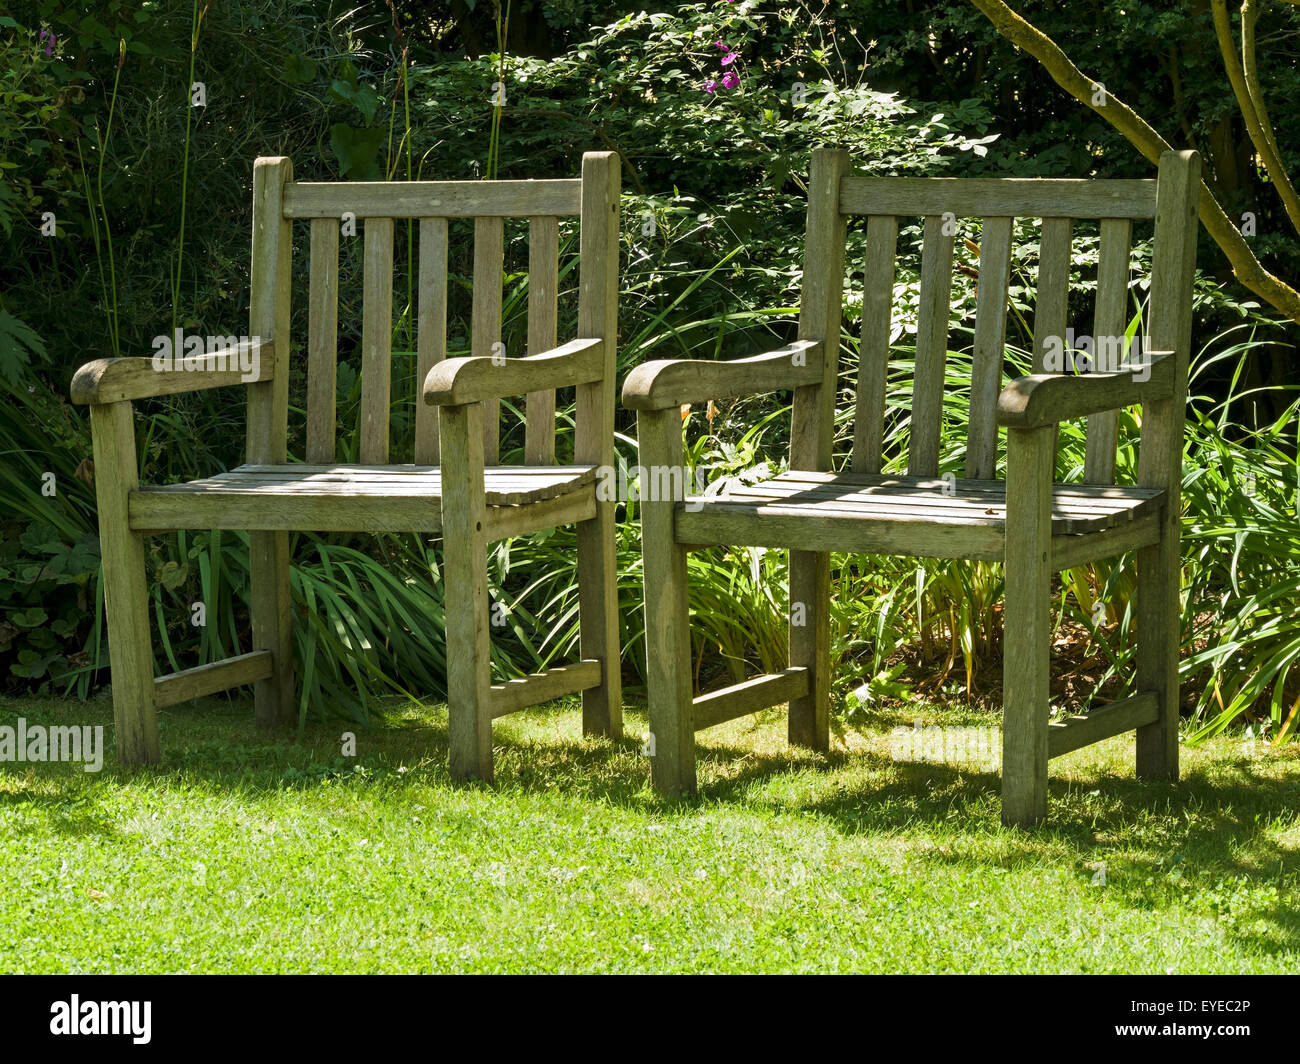 Two Sunlit, Wooden Garden Seats On Grass Lawn, Barnsdale Gardens, Rutland,  UK